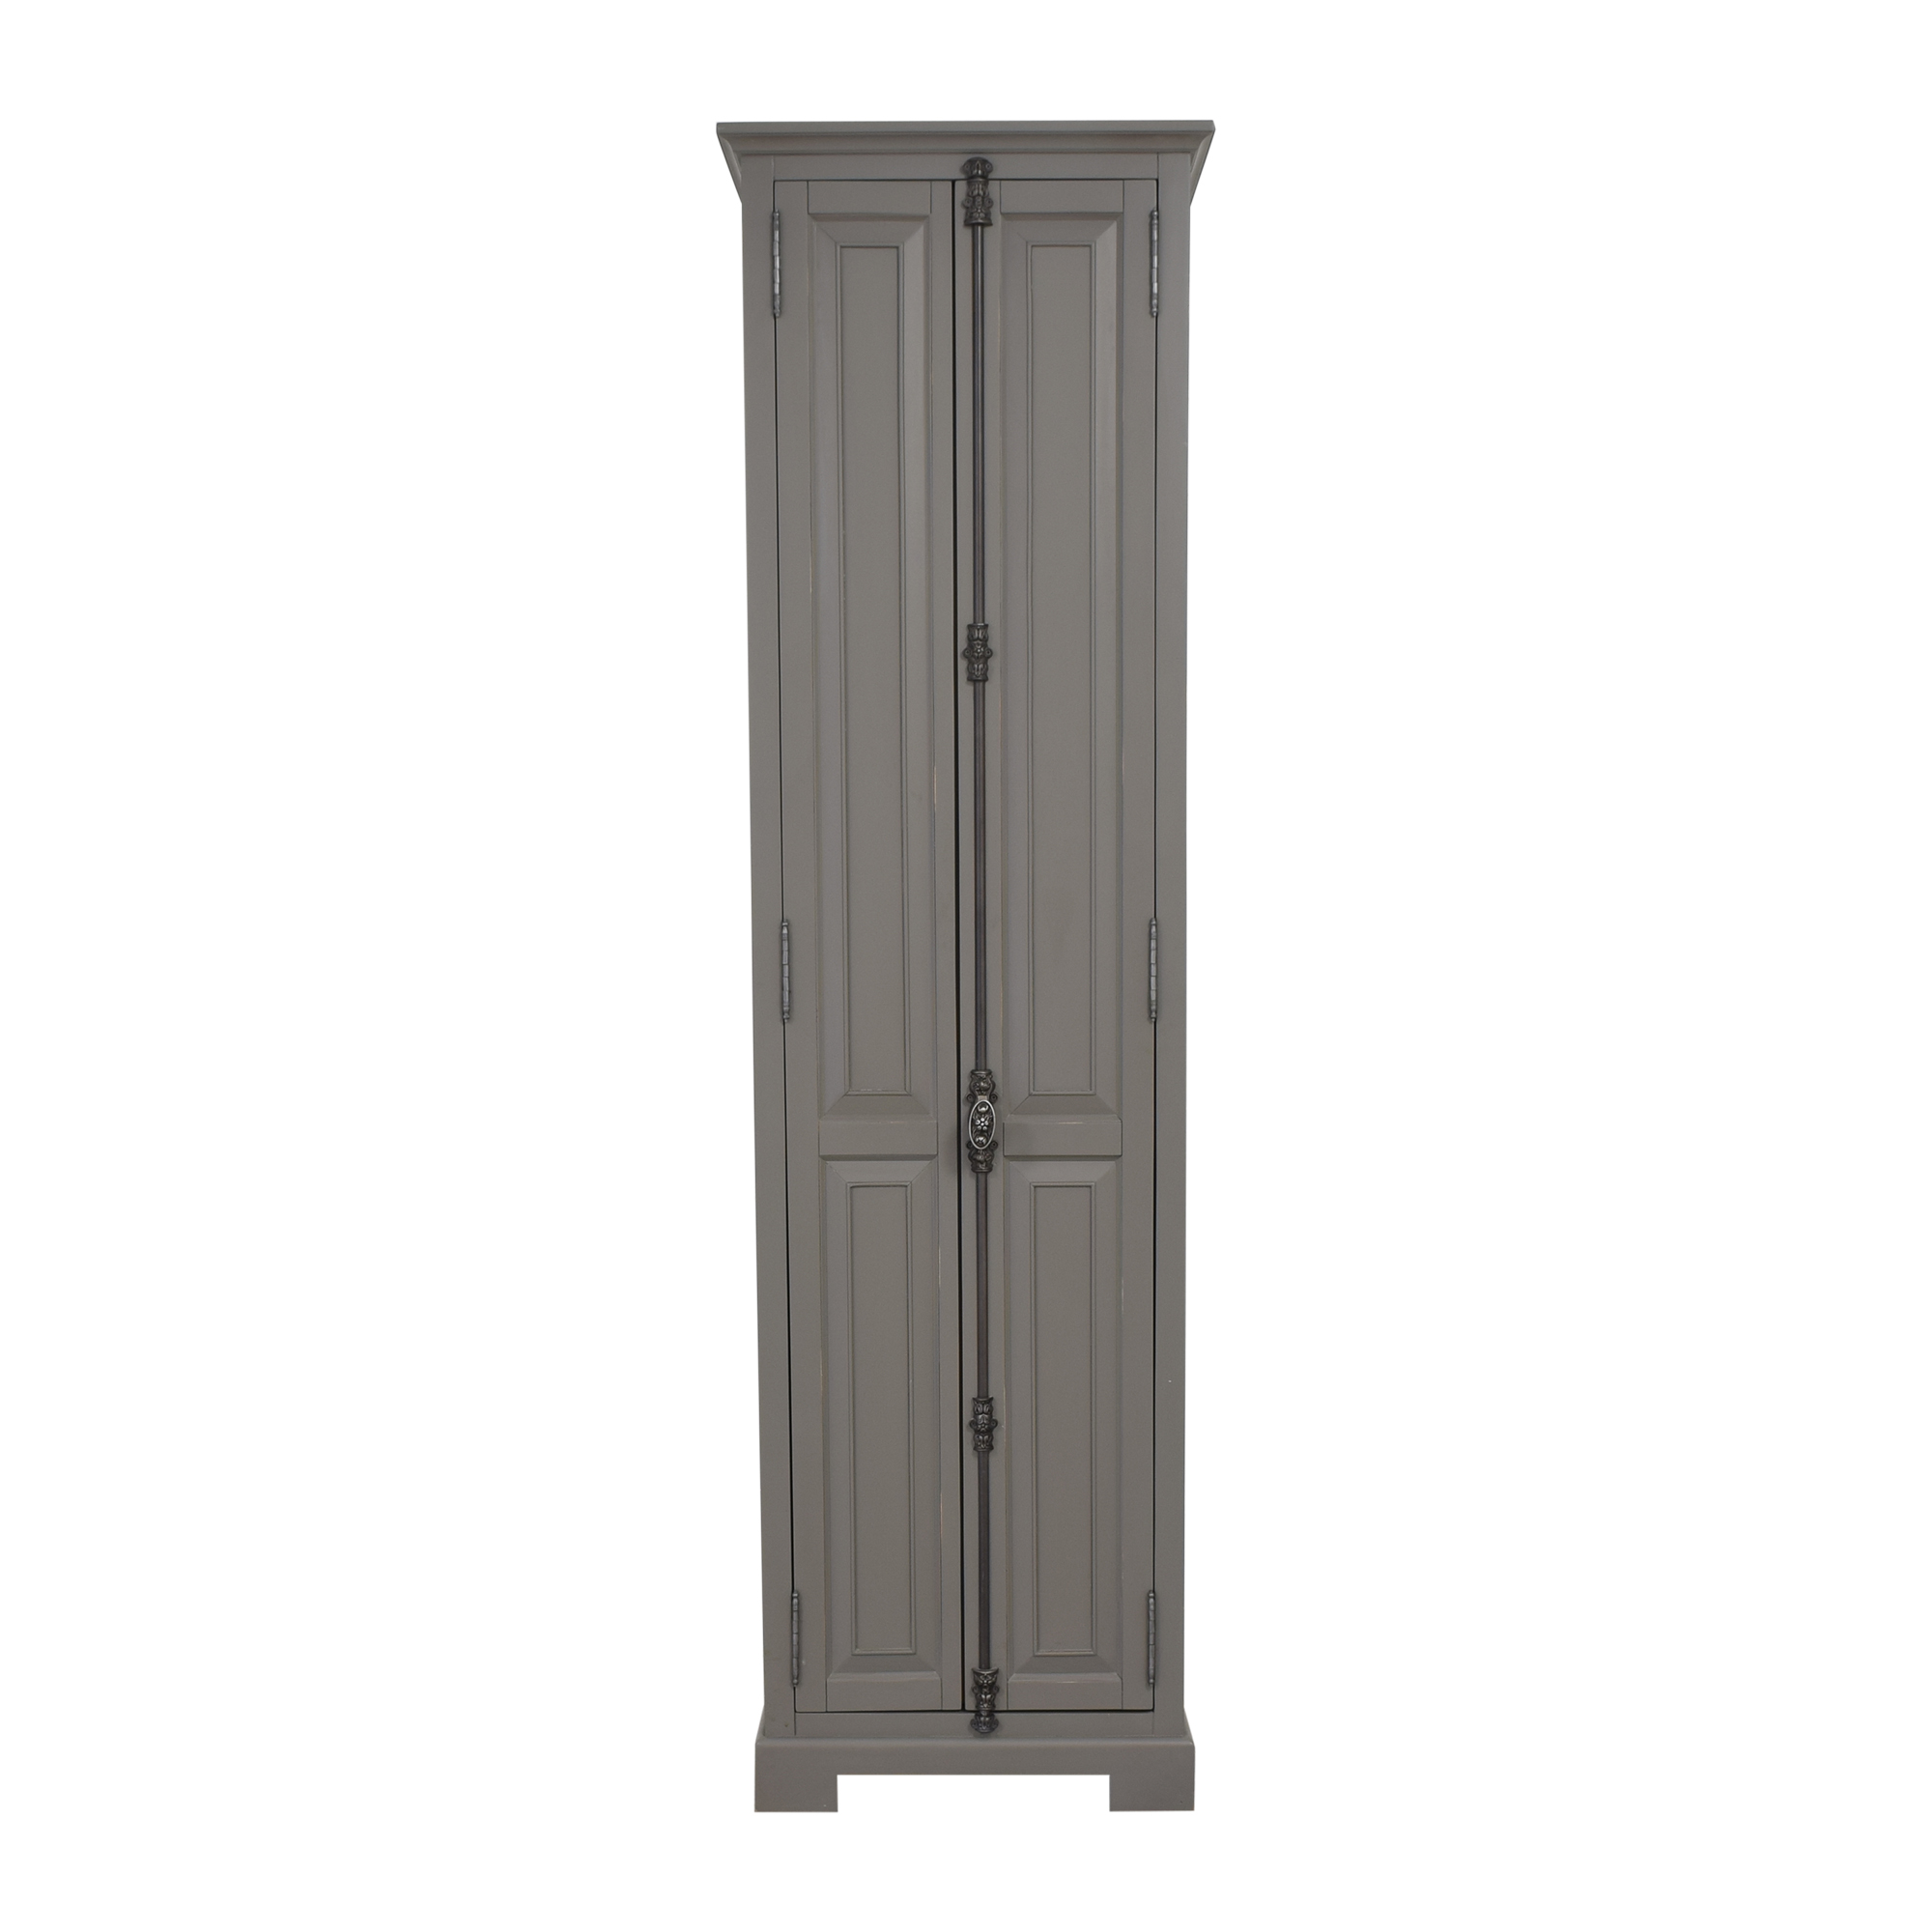 Restoration Hardware Restoration Hardware French Casement Tall Cabinet nyc